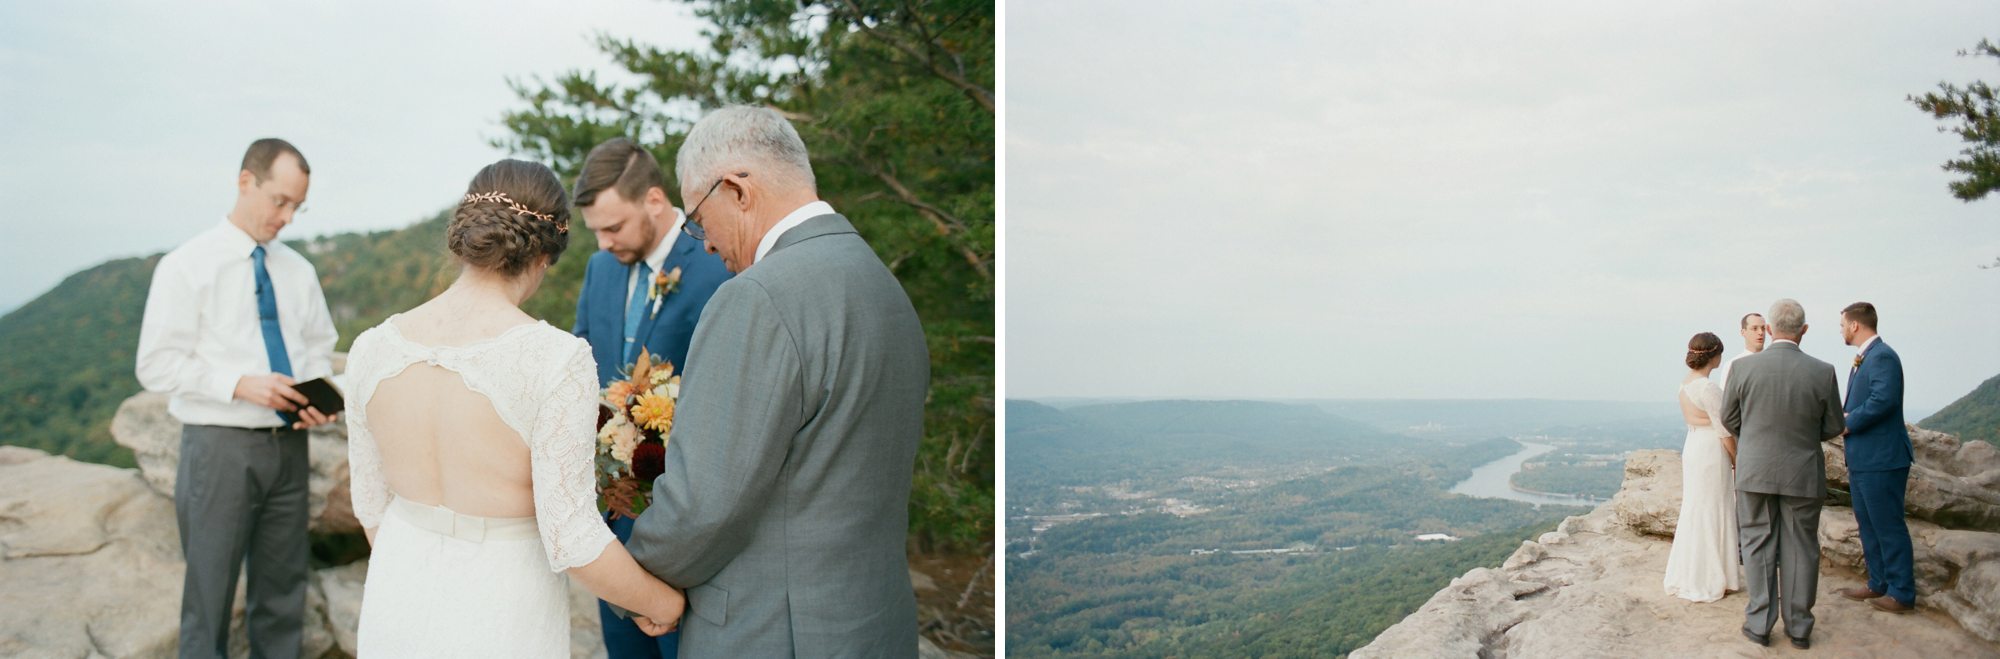 chattanooga-wedding-photographer_0030